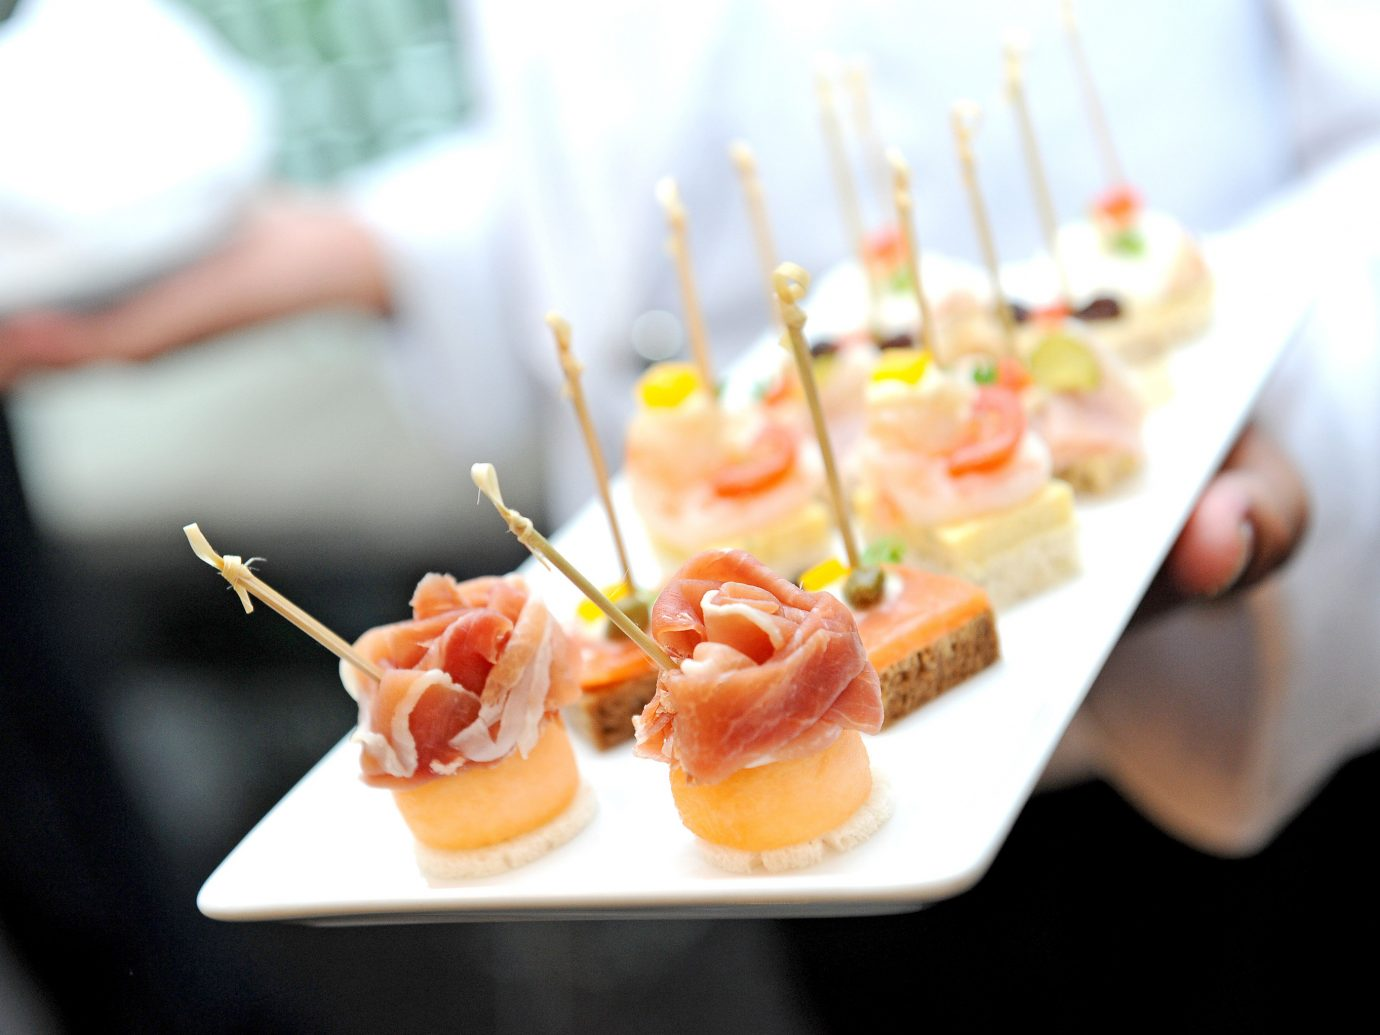 Food + Drink food dish plate meal hors d oeuvre brunch restaurant cuisine lunch pincho breakfast culinary art sense sushi